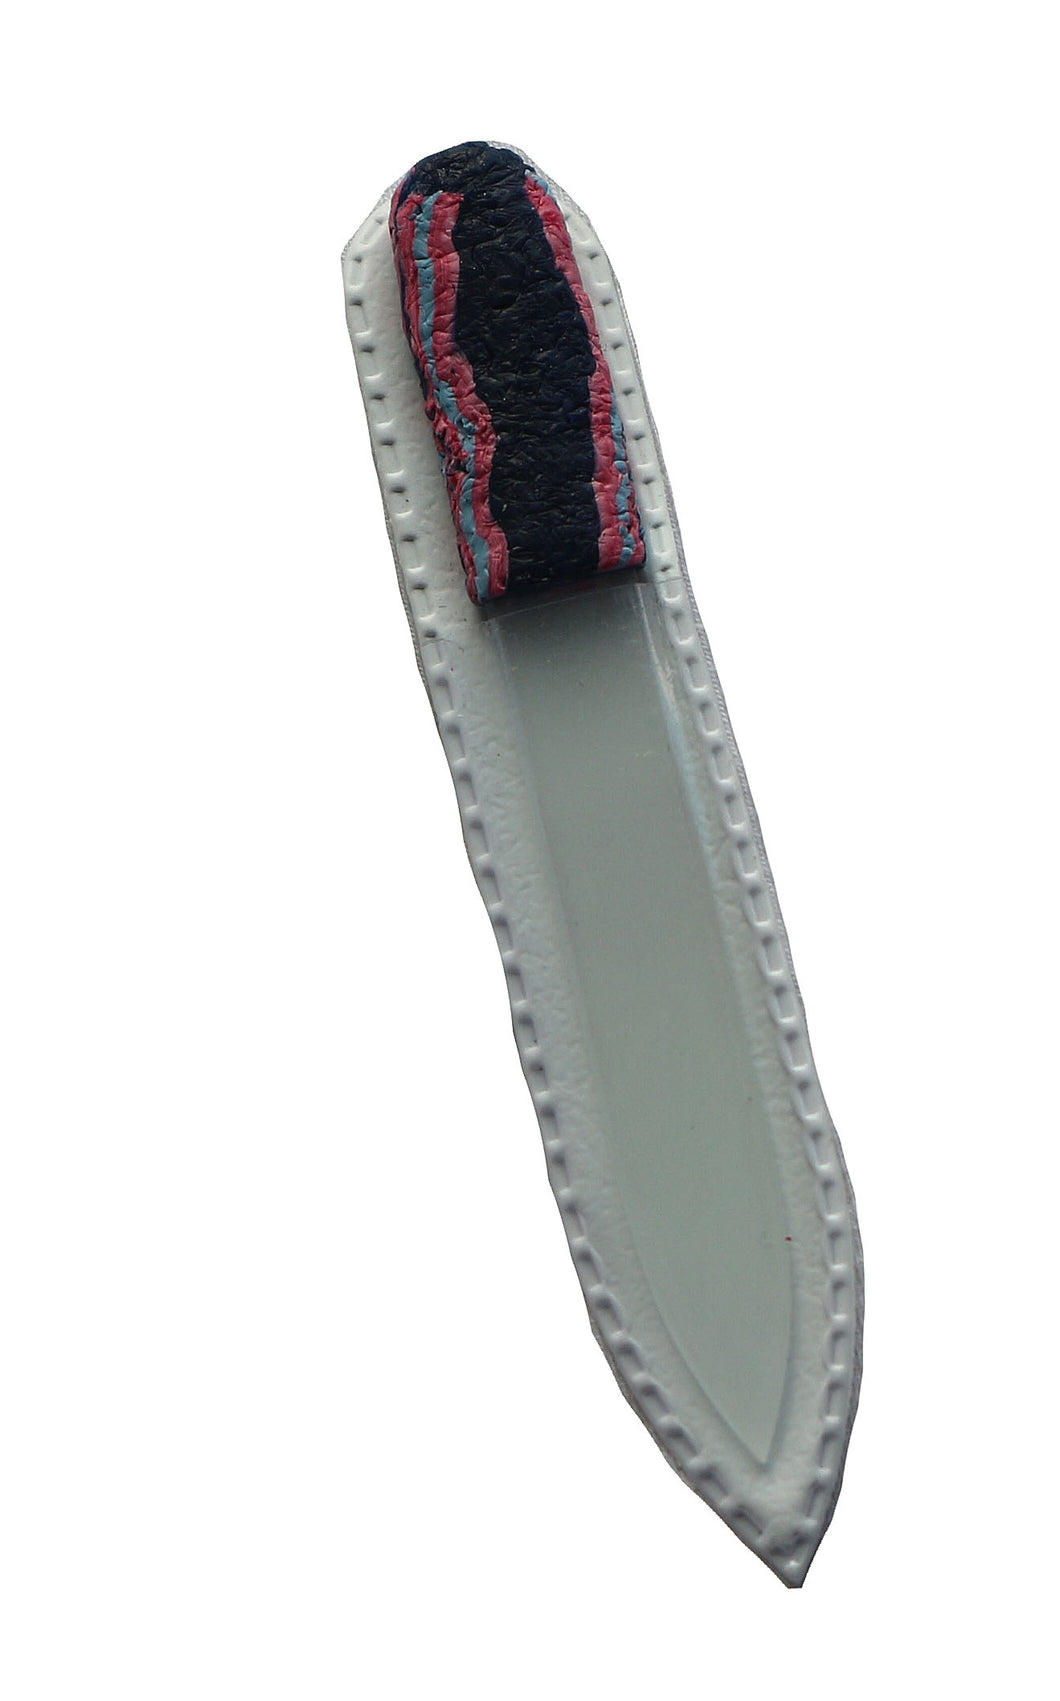 Crystal Nail File-Small- Pink & Purple Stripes